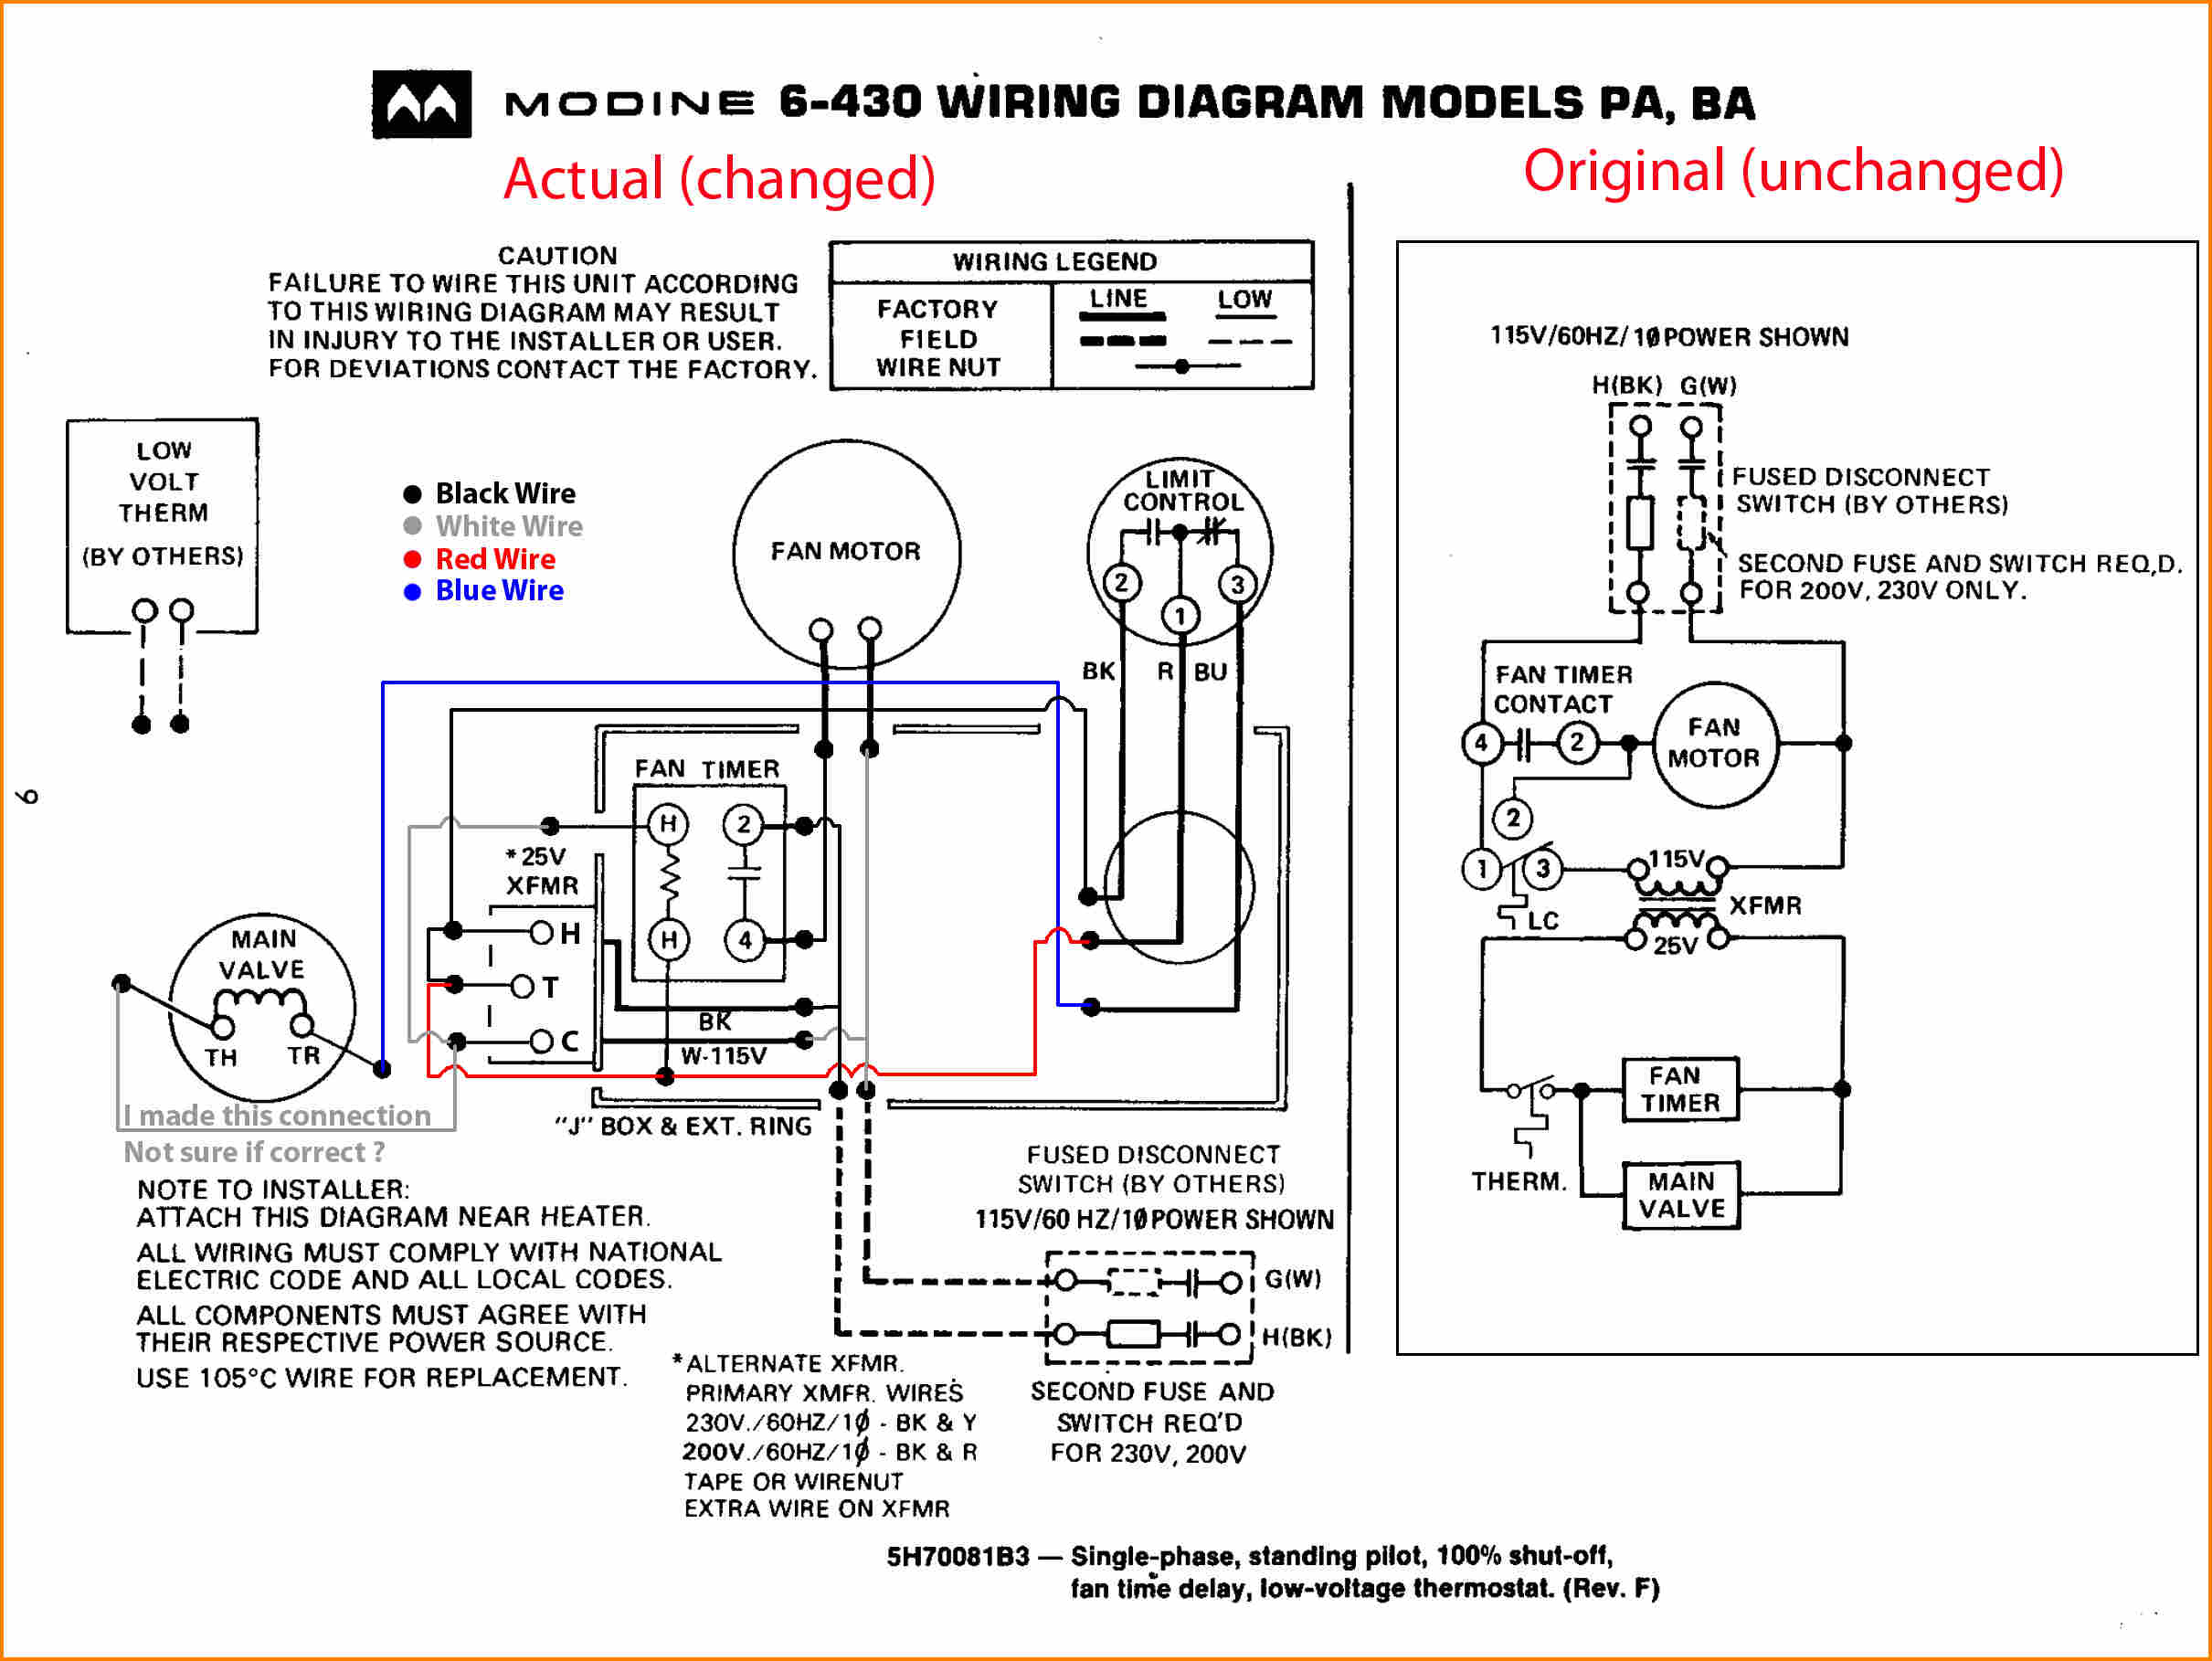 snyder general furnace wiring diagram auto electrical. Black Bedroom Furniture Sets. Home Design Ideas